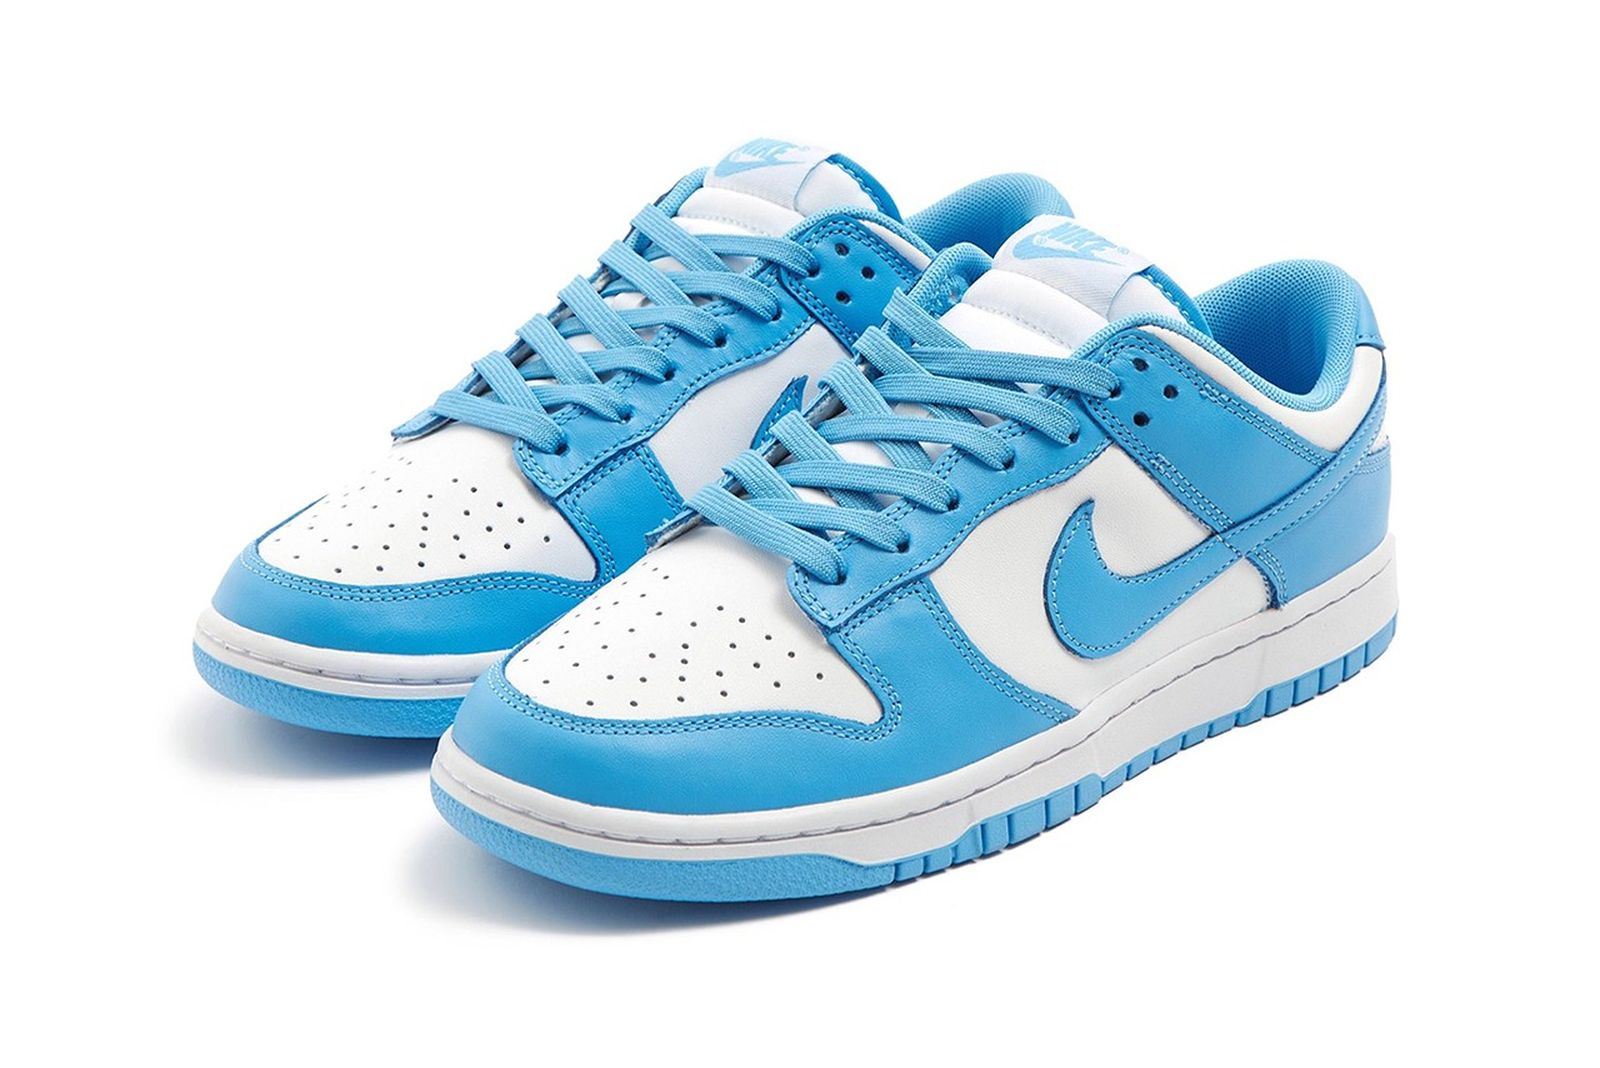 nike-dunk-low-university-blue-release-date-price-1